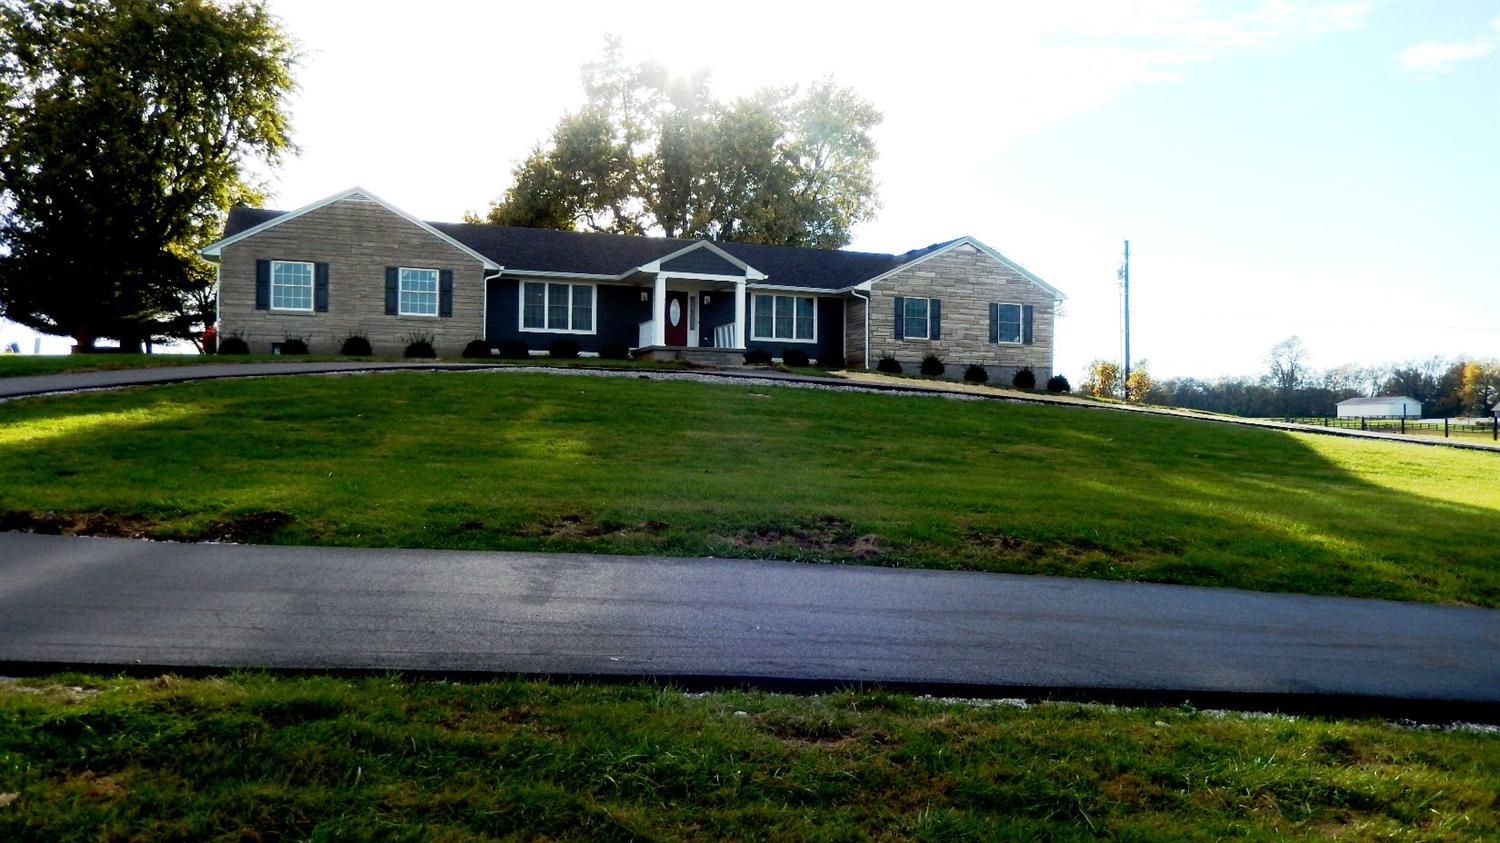 Property for sale at 3716%20Winchester%20Rd,%20Lexington,%20KY%2040509